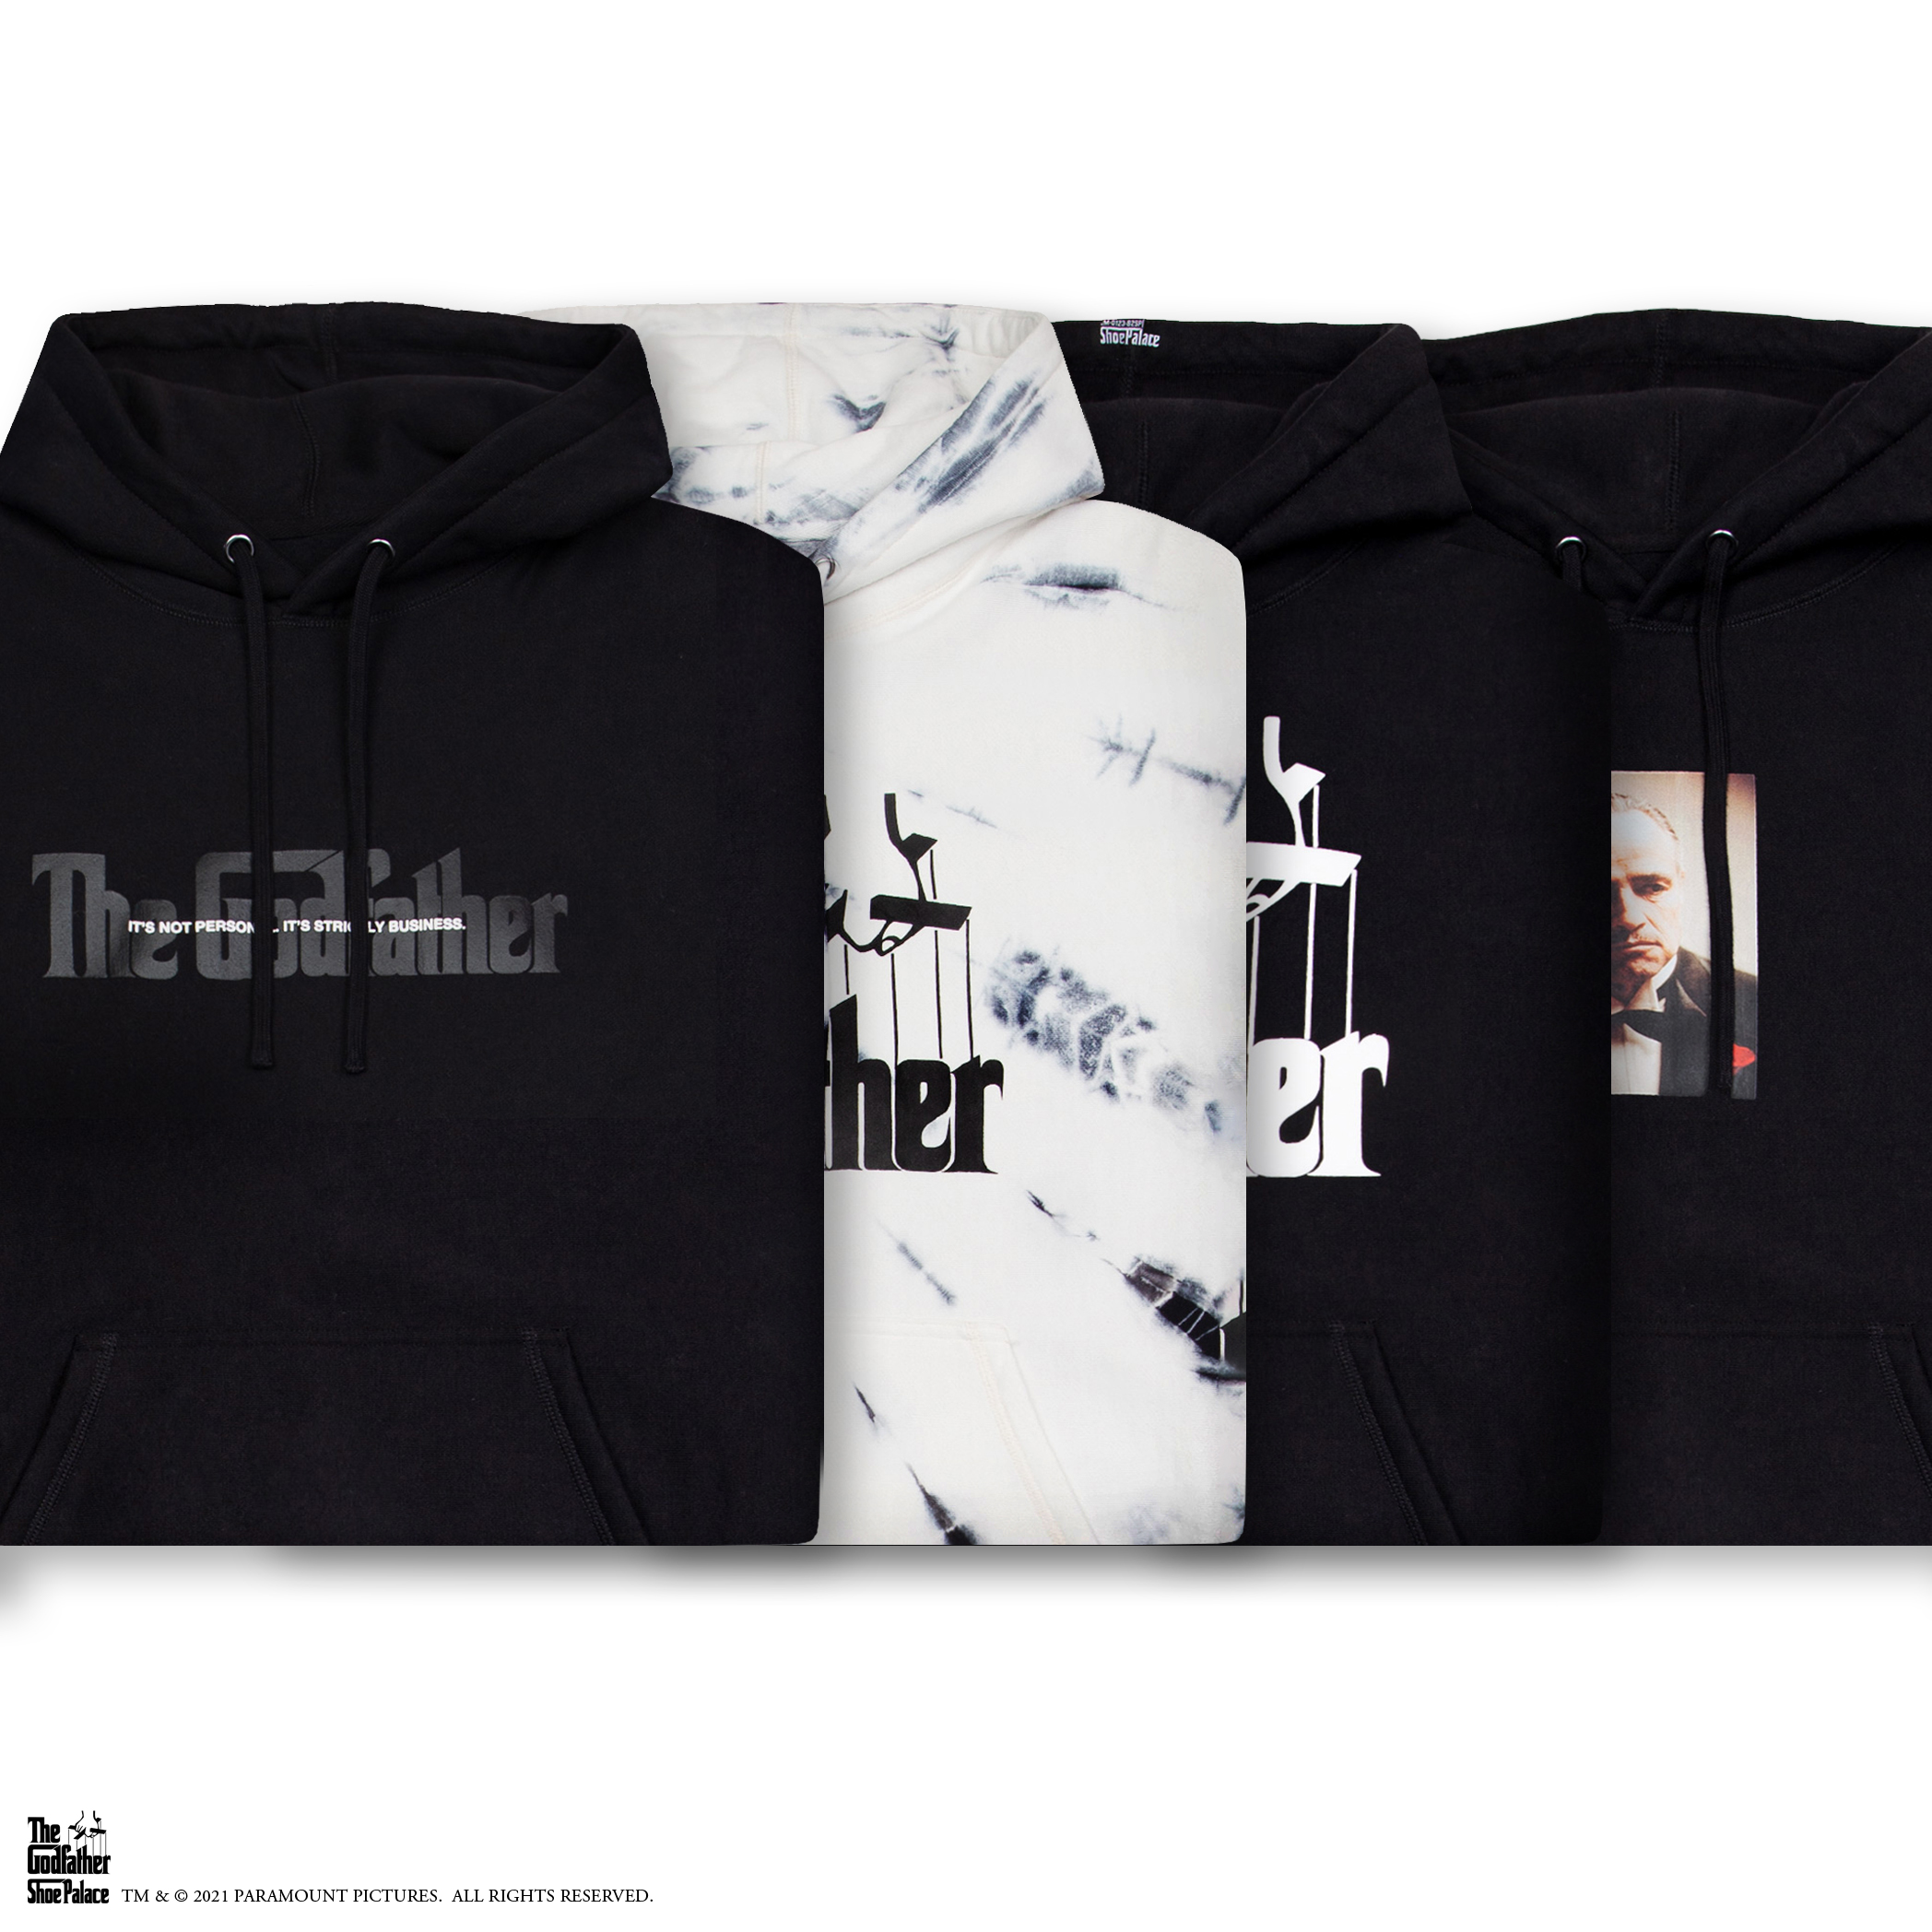 Shoe Palace and 'The Godfather' Team for Limited Edition Merch Collection